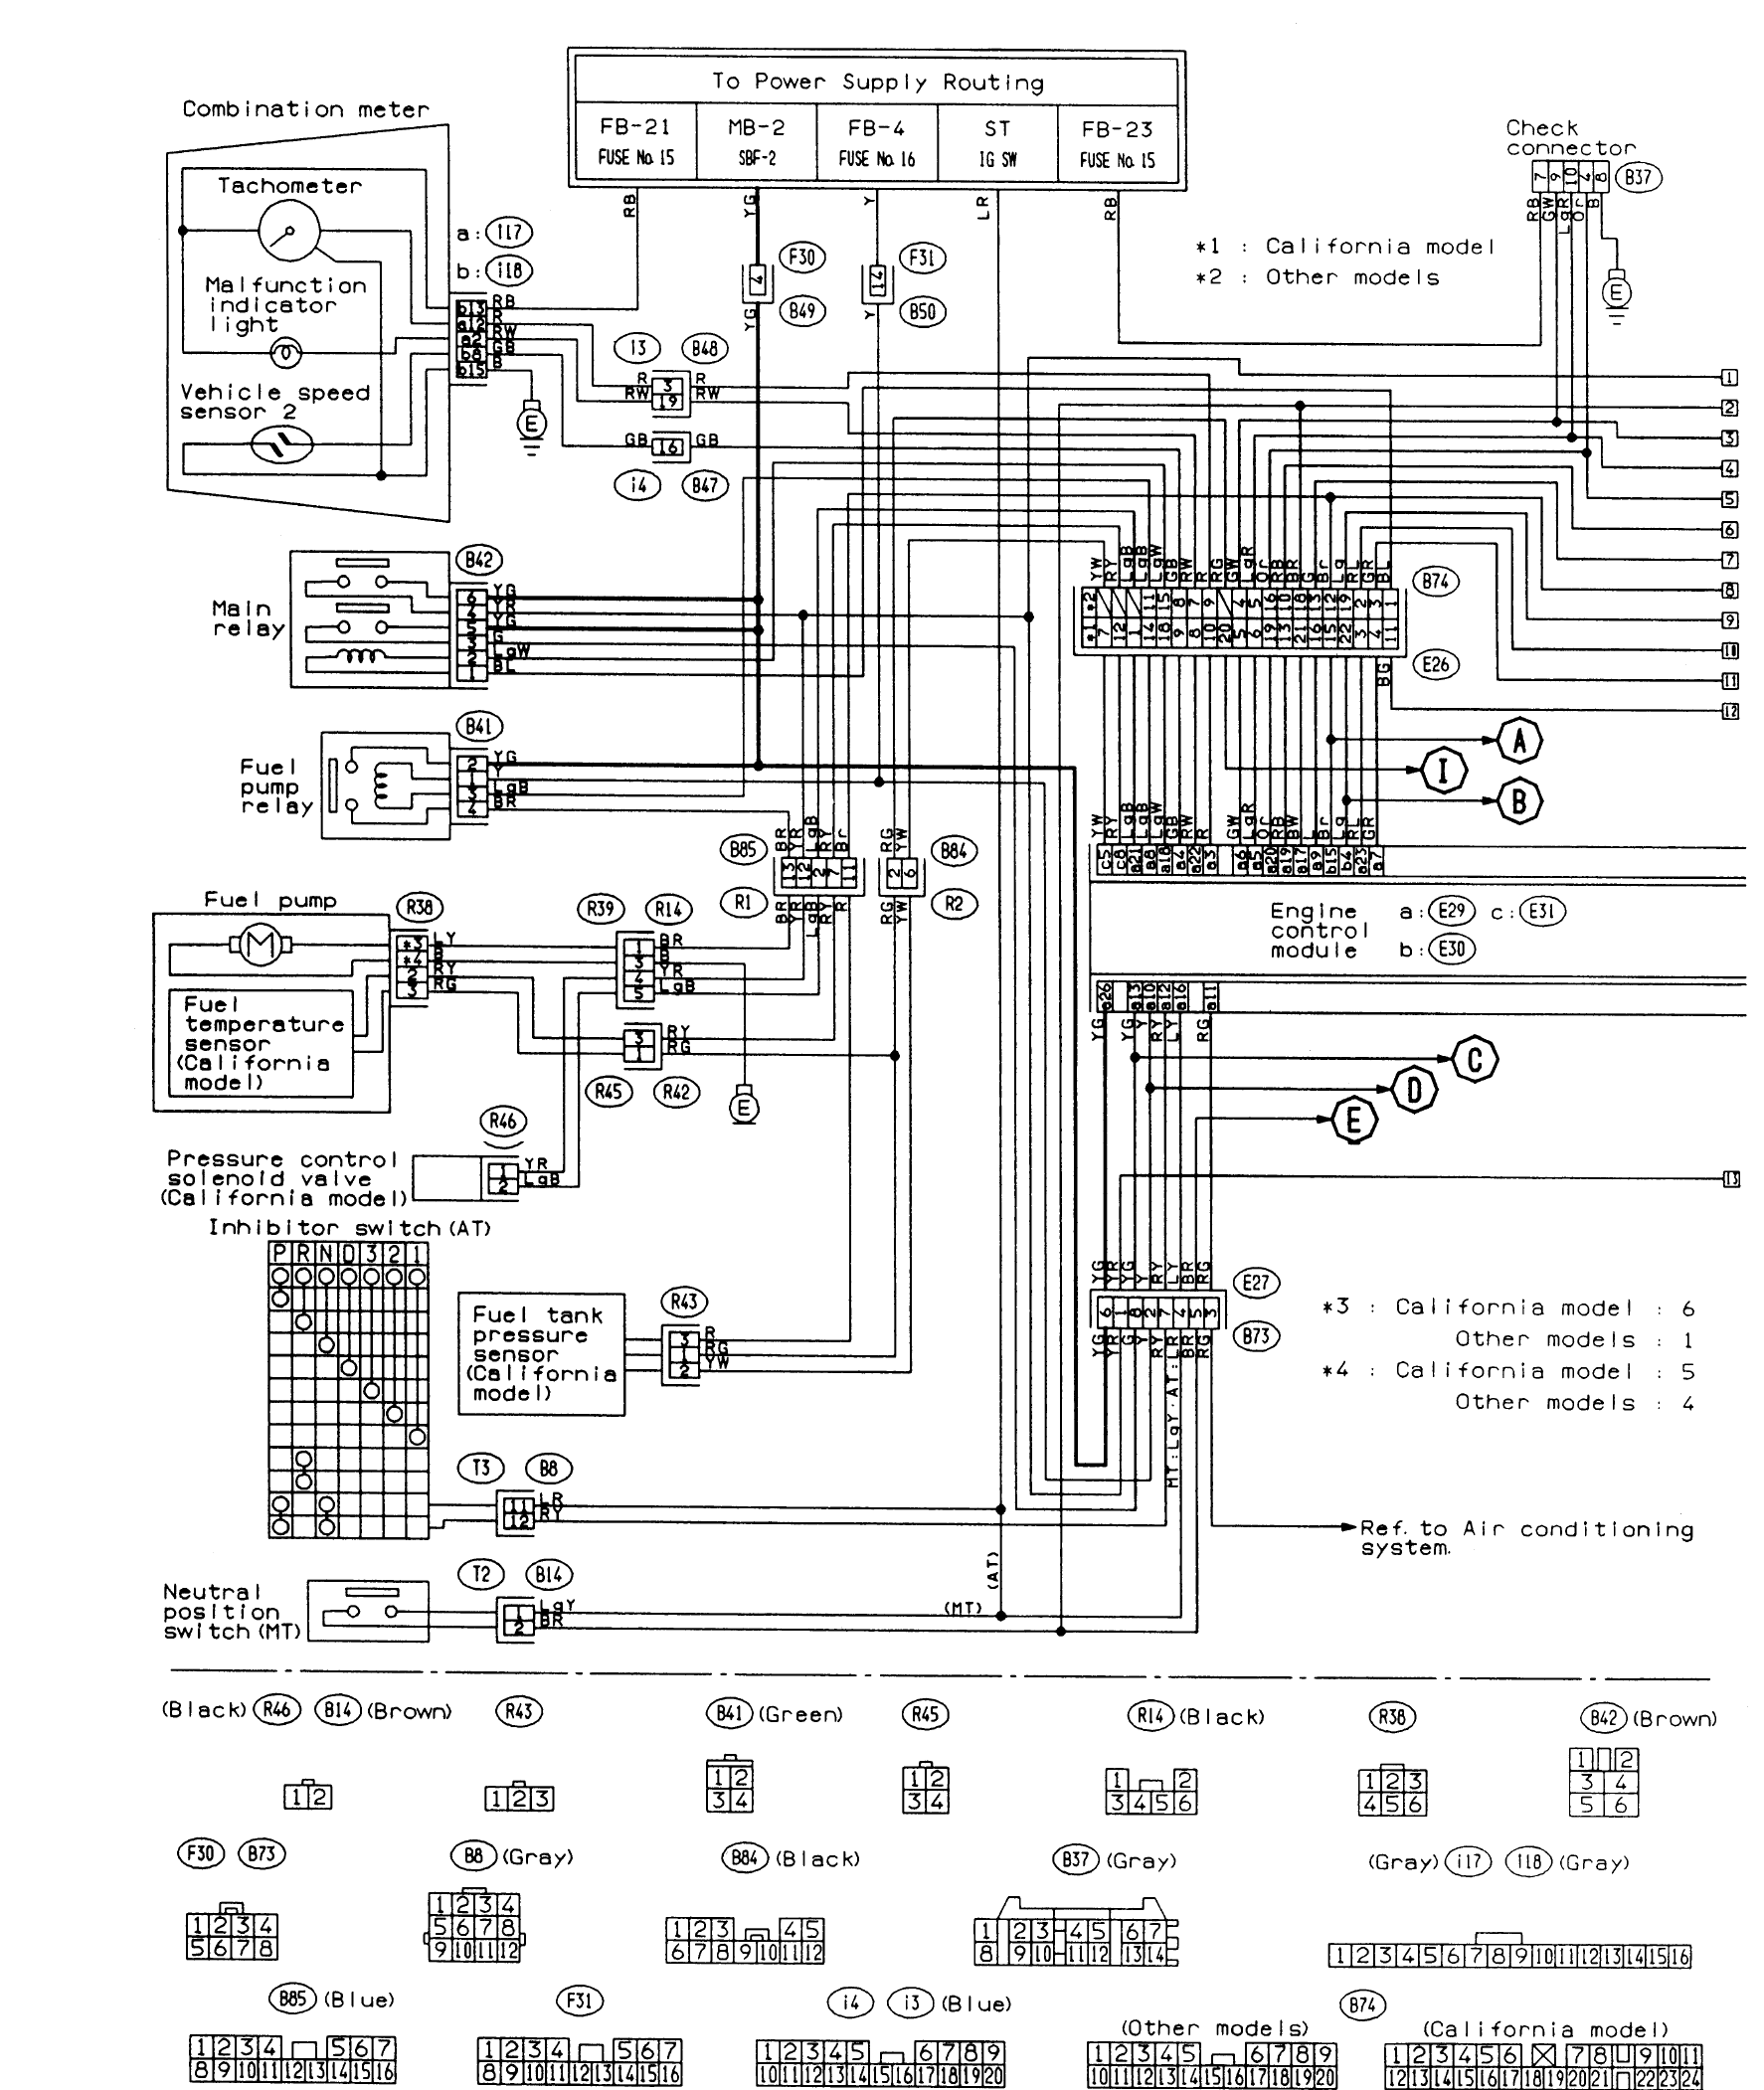 medium resolution of electrical diagram for ac unit in 2009 subaru forester pinouts for 95 impreza 1 8 ecu nasioc